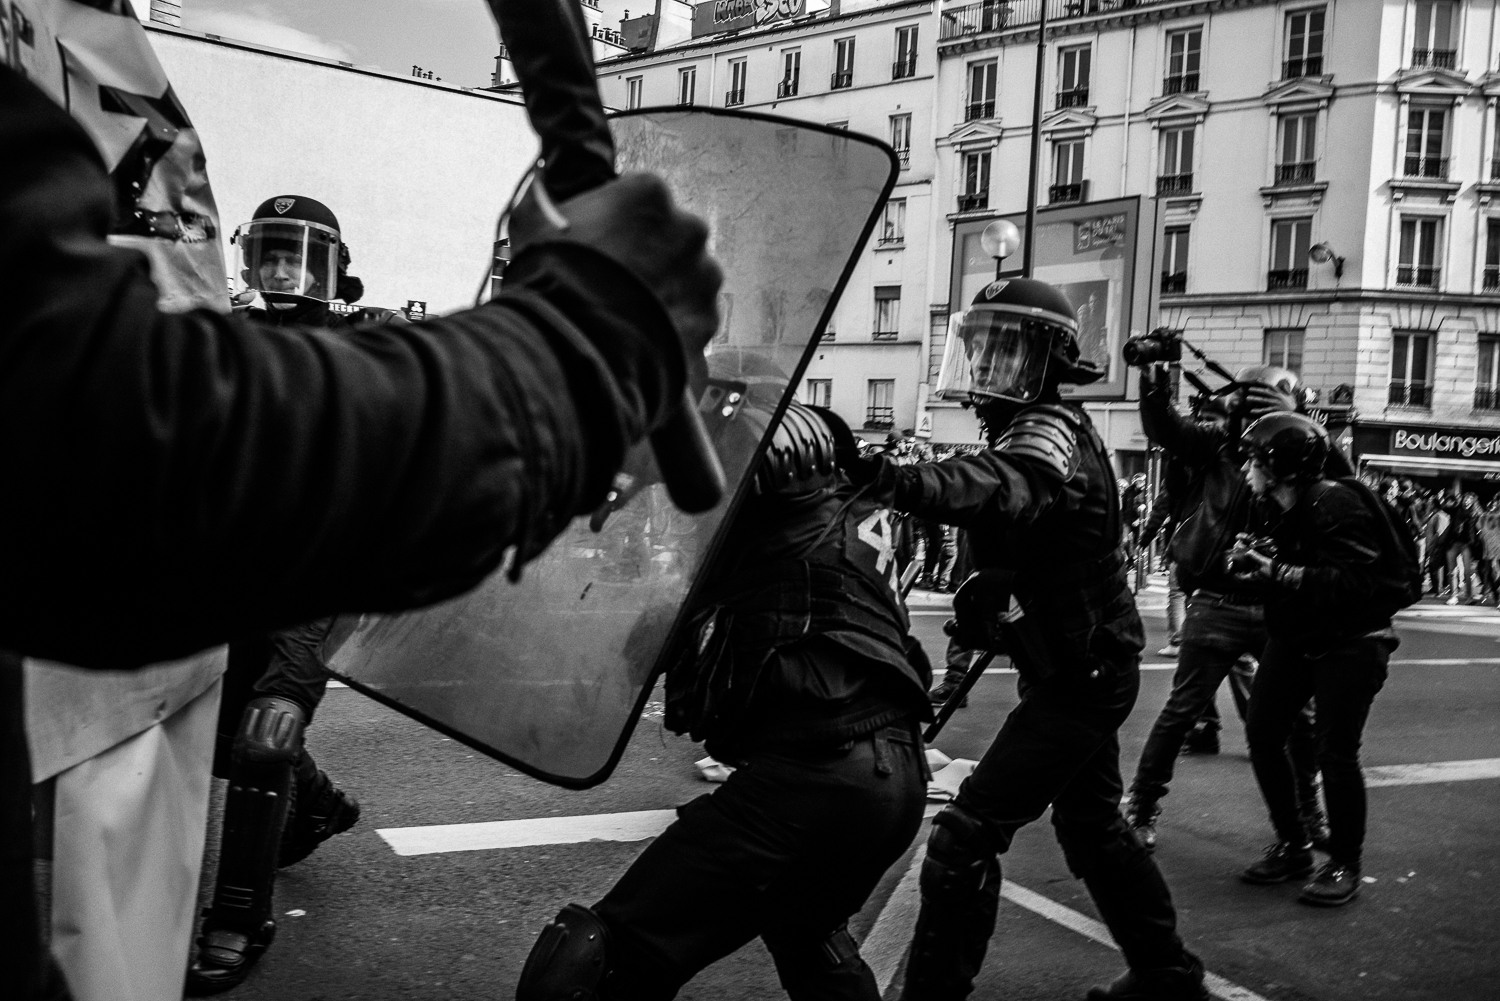 A riot police officer pulling his colleague out of the fray,5th April 2016.